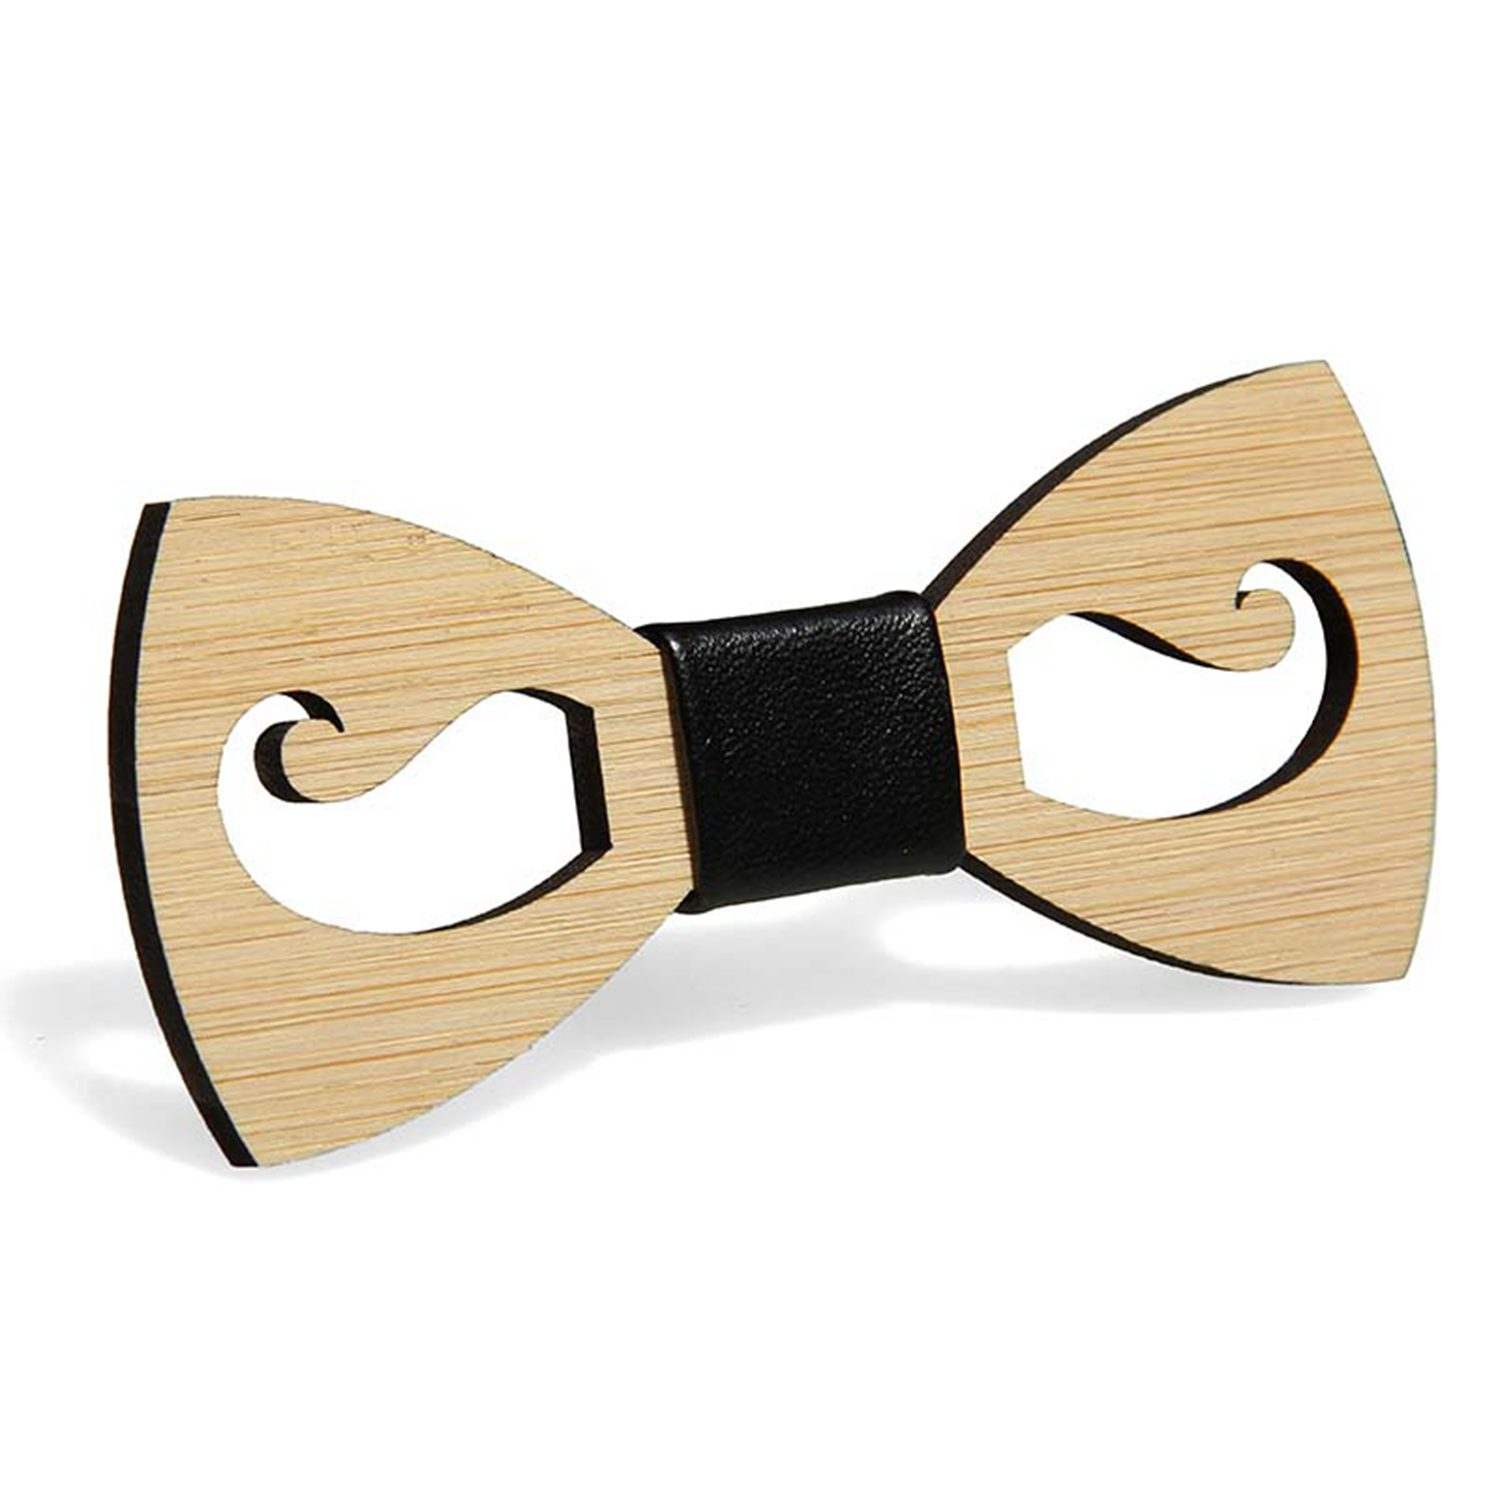 Mens Wooden Bow Tie Accessory Wedding Party Christmas Gifts Bamboo Wood Bowtie Neck Wear For Men Women Cravat Bearded